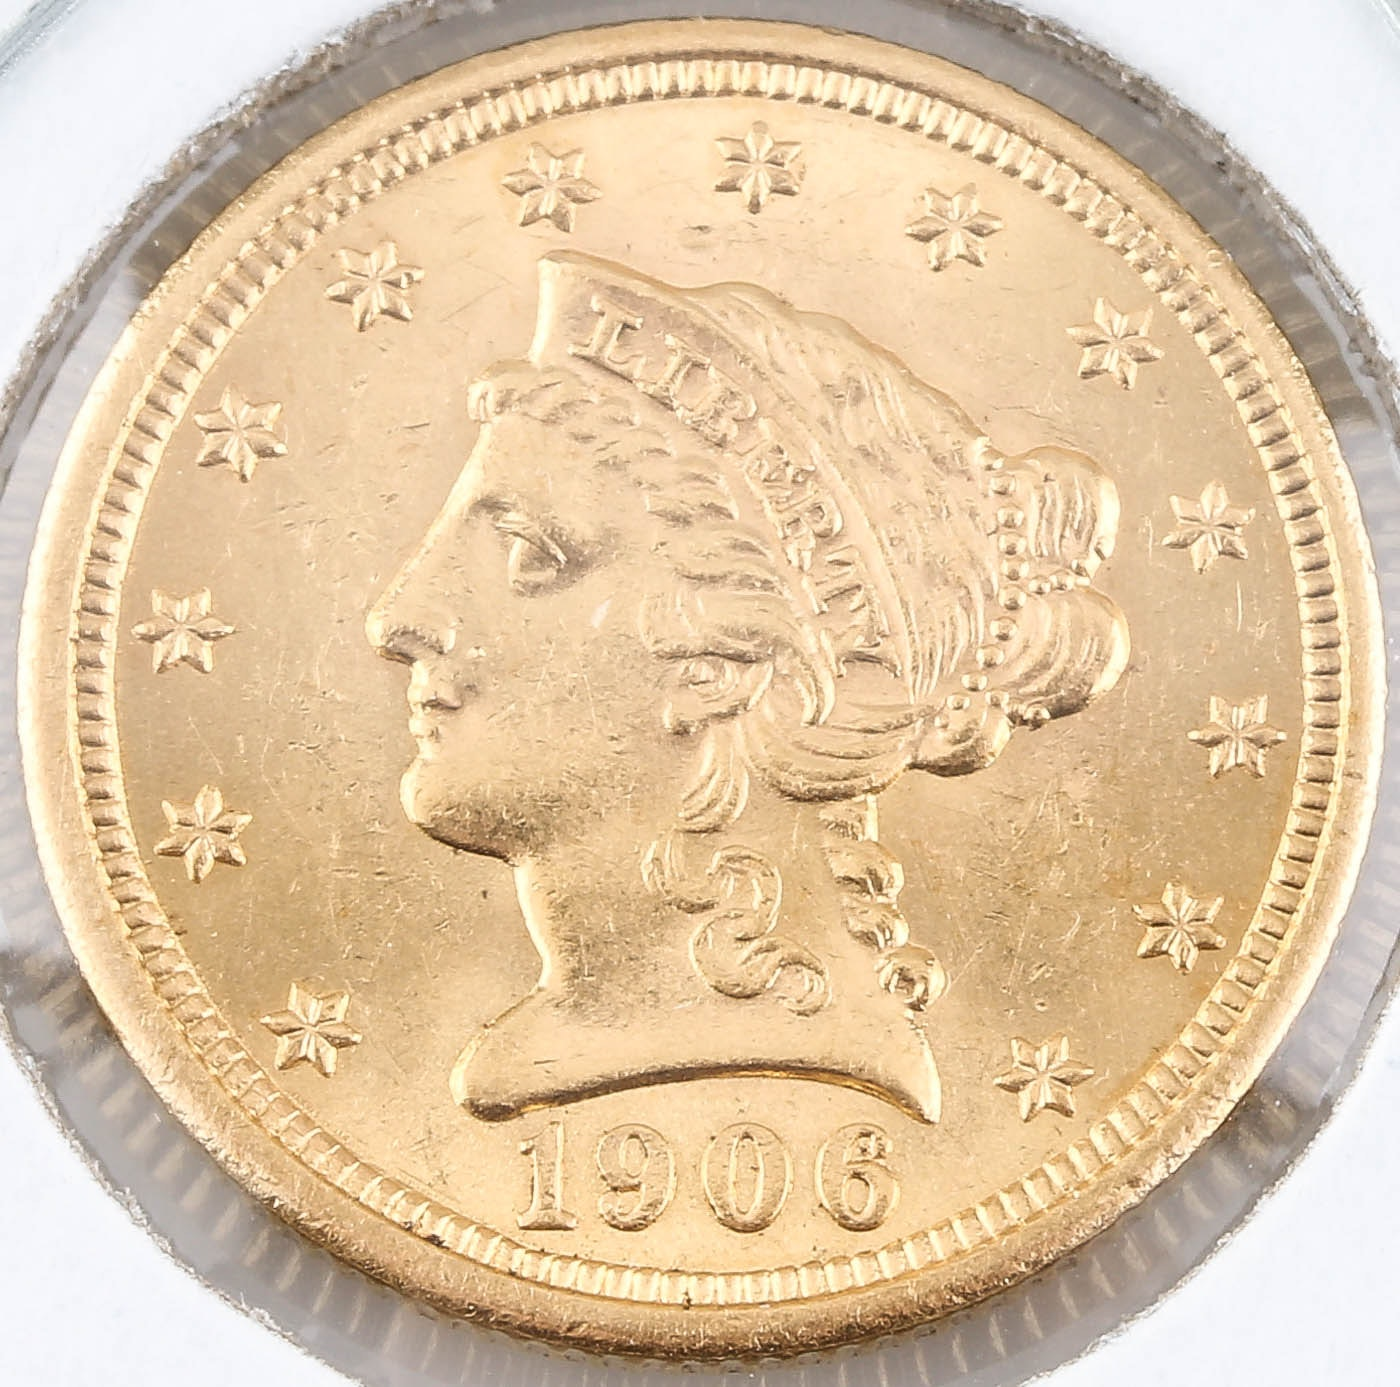 1906 Liberty Head $2 1/2 Gold Coin